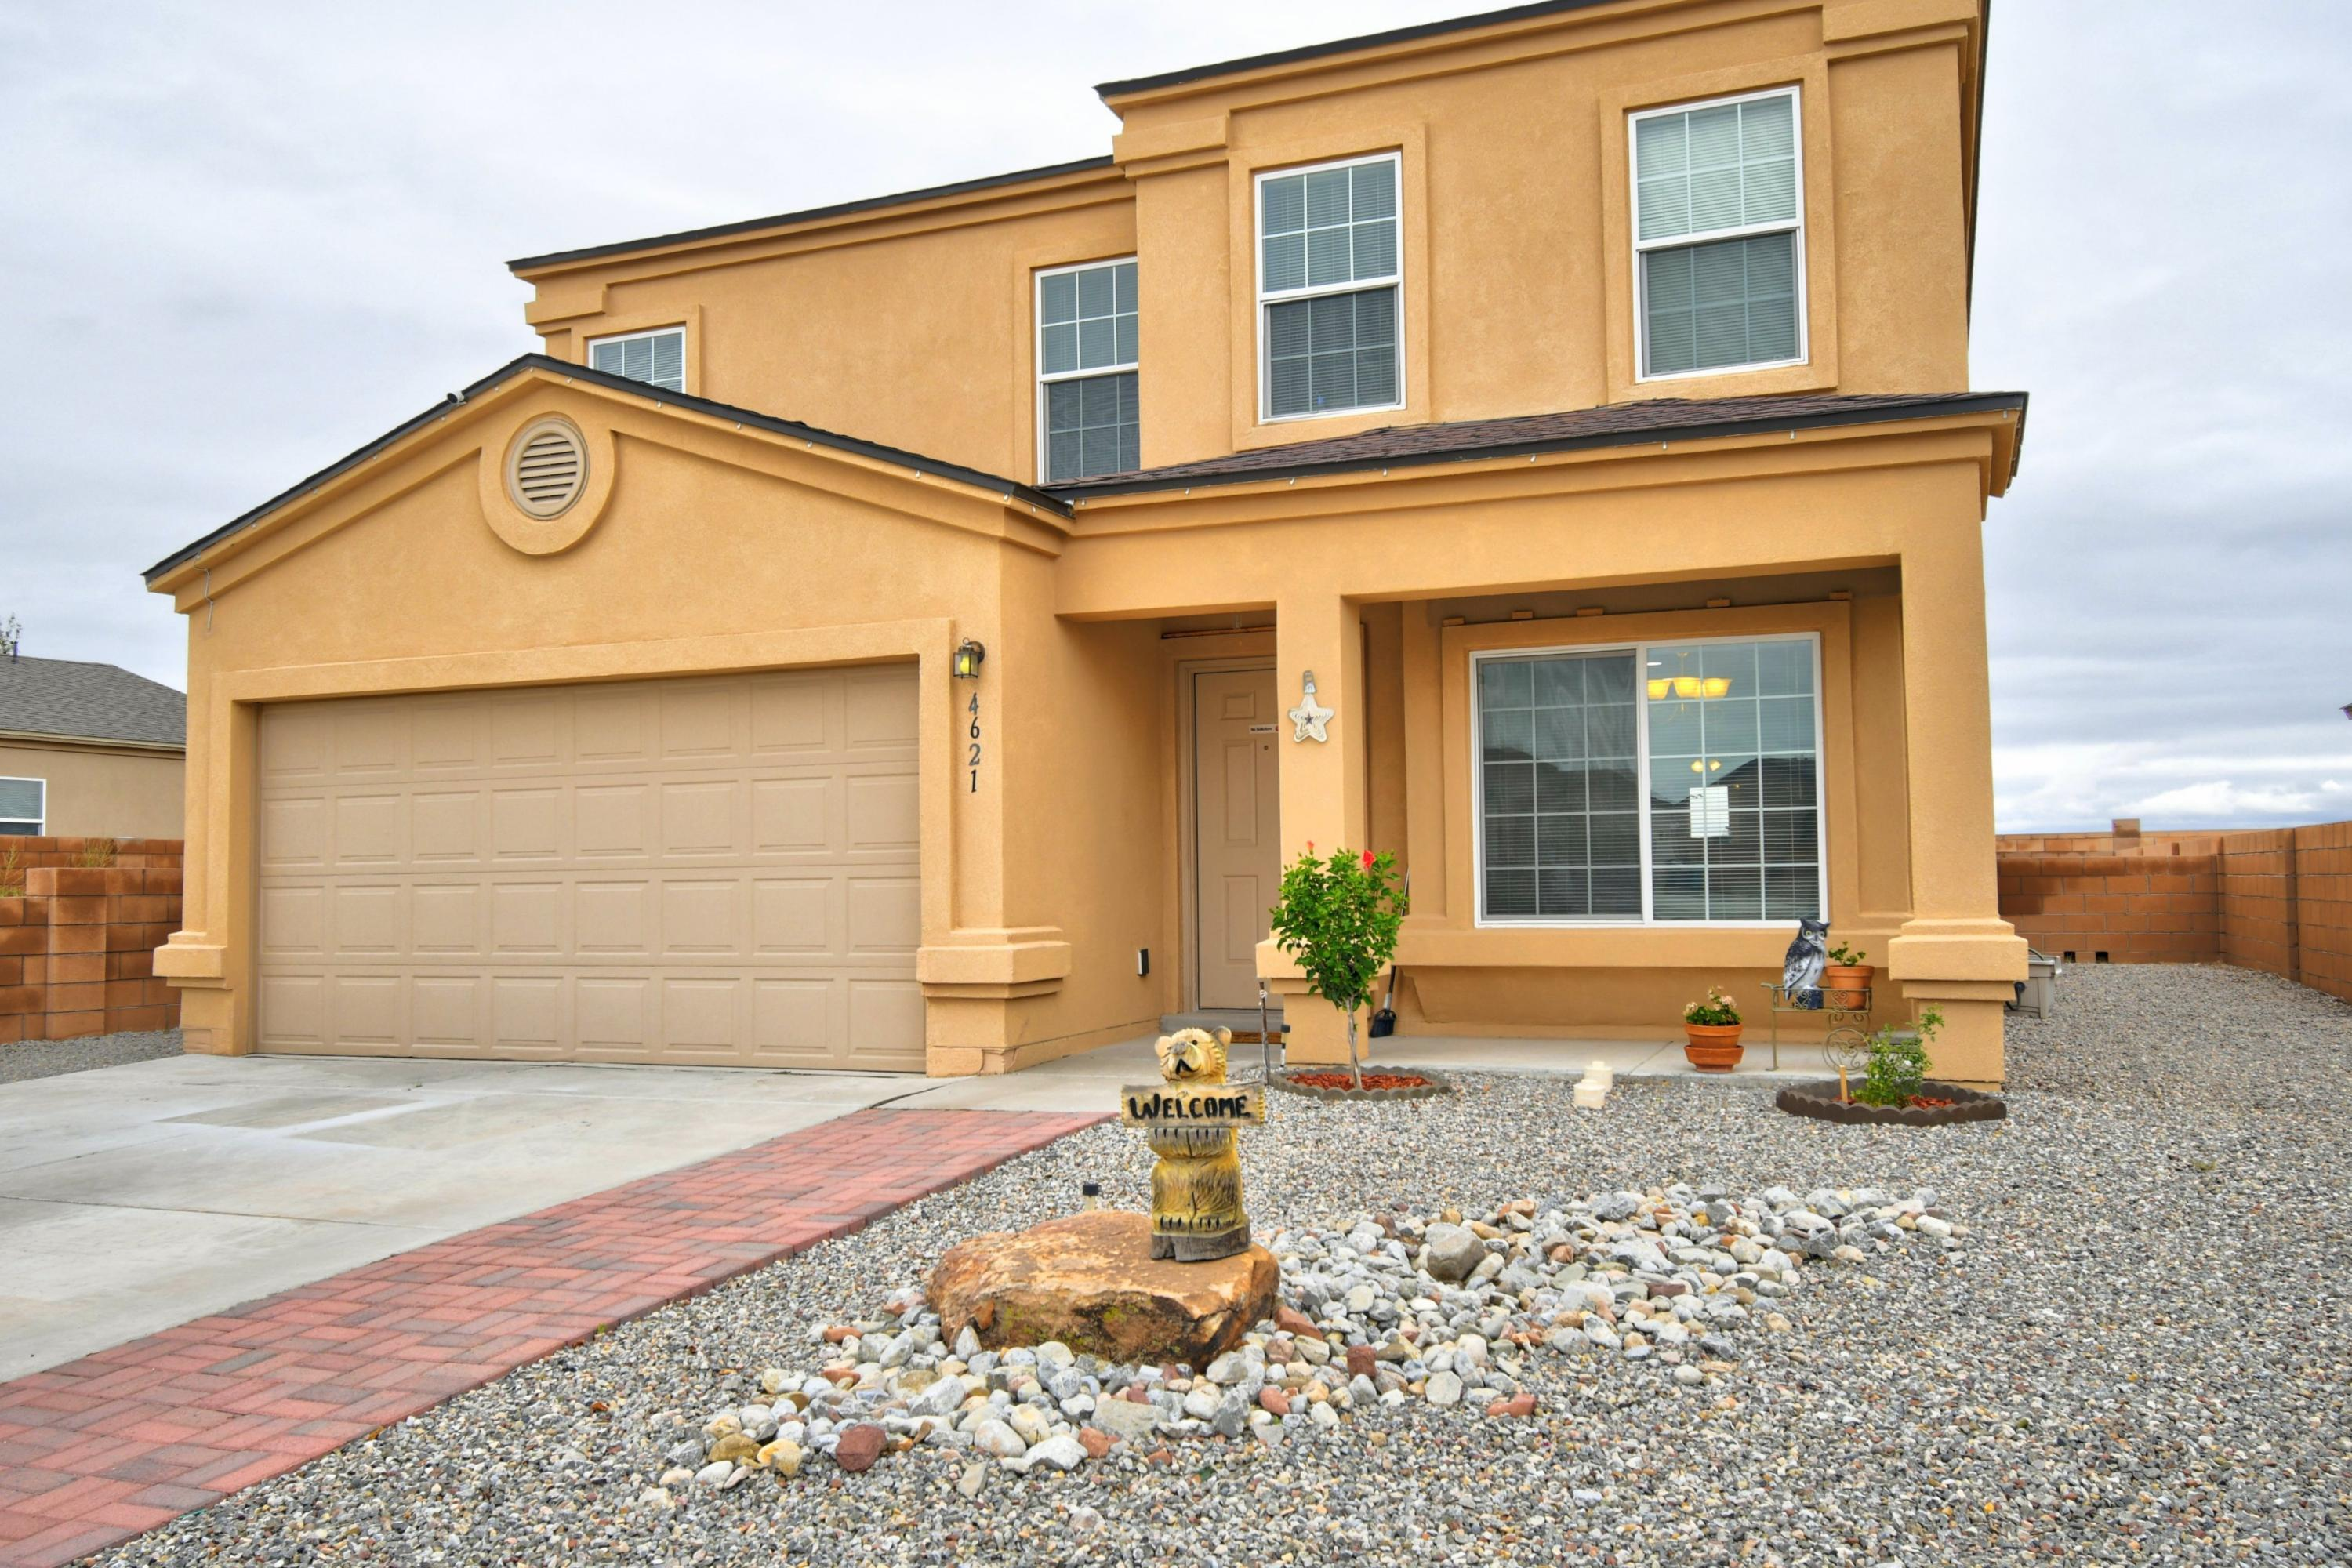 Spacious, move-in ready home, priced to sell! Country living at its best. Versatile floor plan for family living,  entertains well with open concept and includes gas fireplace.  Front alcove window seat provides cheerful atmosphere.  Covered patios front and rear  with upstairs balcony overlooking Jemez Mountain.  Two master suites with additional bedrooms plus loft. No HOA. Must see home!